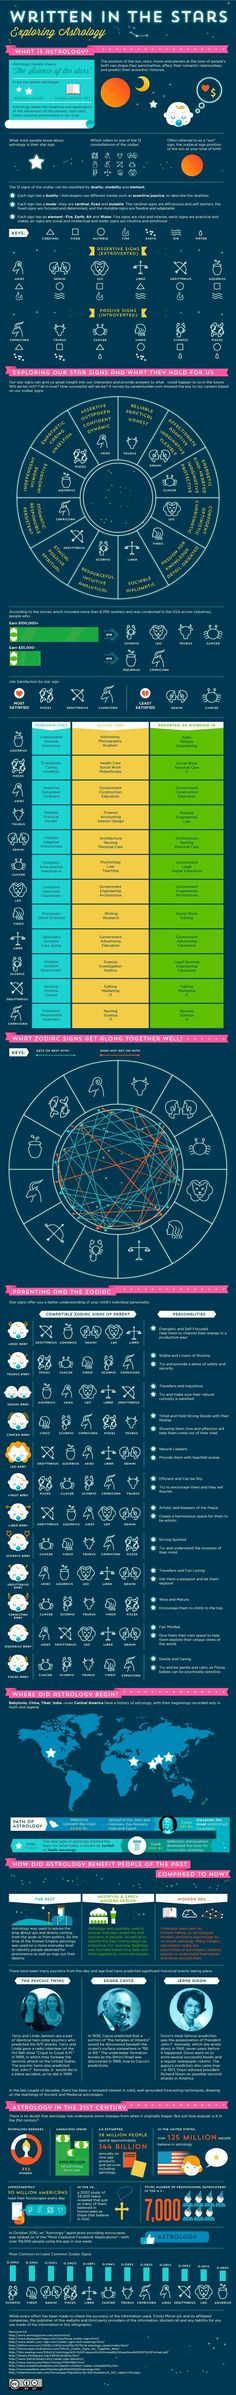 Astrology 101: People from Mirror Horoscopes Team compiled this infographic in an effort to give us a better understanding of what each star sign means in terms of characteristics, relationships and even the jobs we choose. Following to this you will find